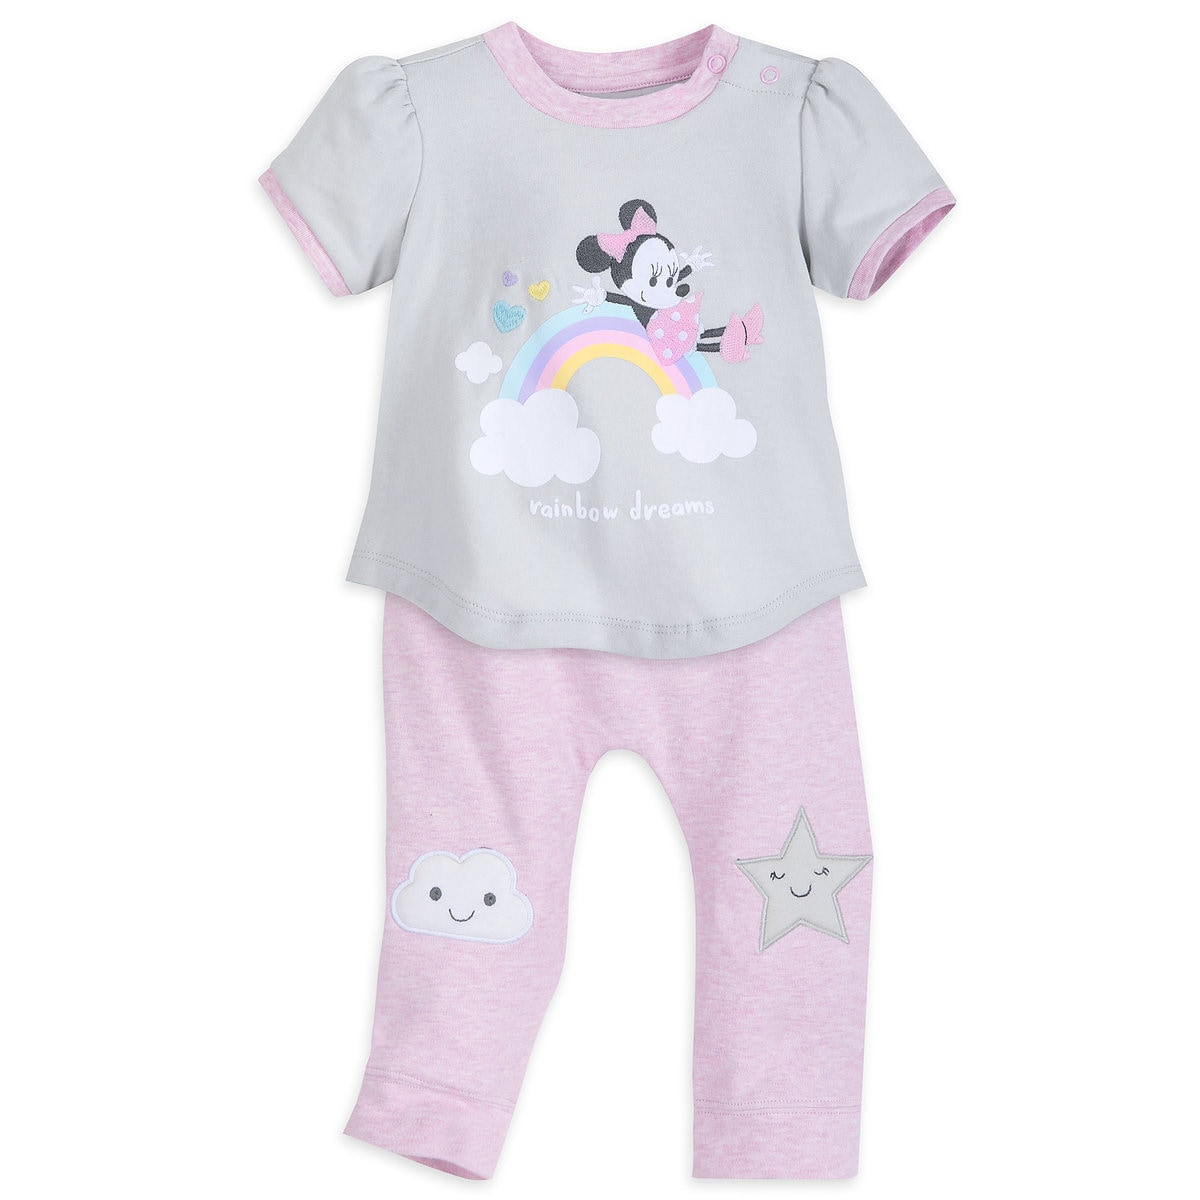 Minnie Mouse Knit Set for Baby | shopDisney